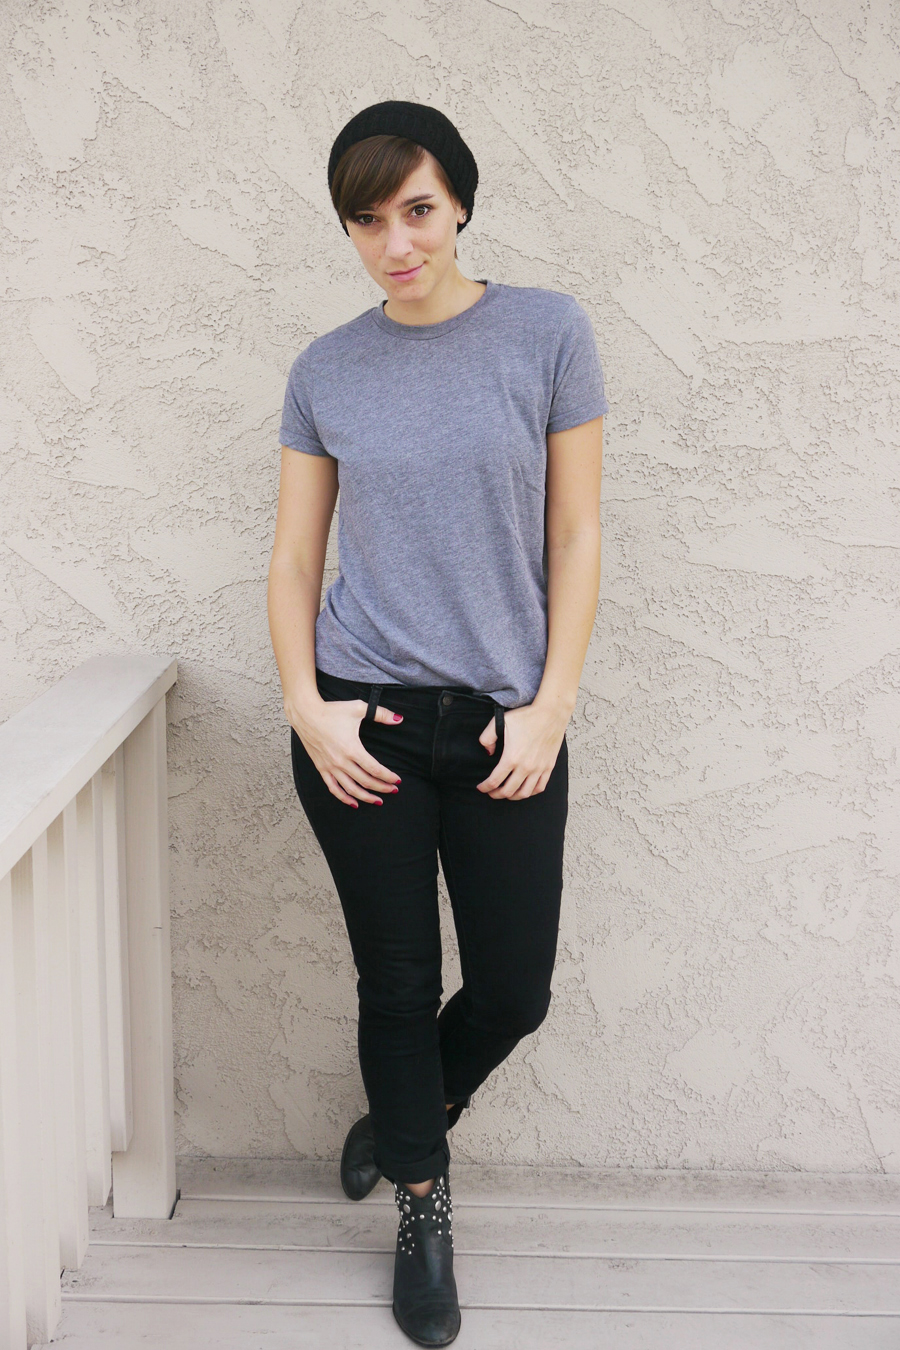 Black beanie black jeans black boots gray shirt for Shirts that go with black jeans